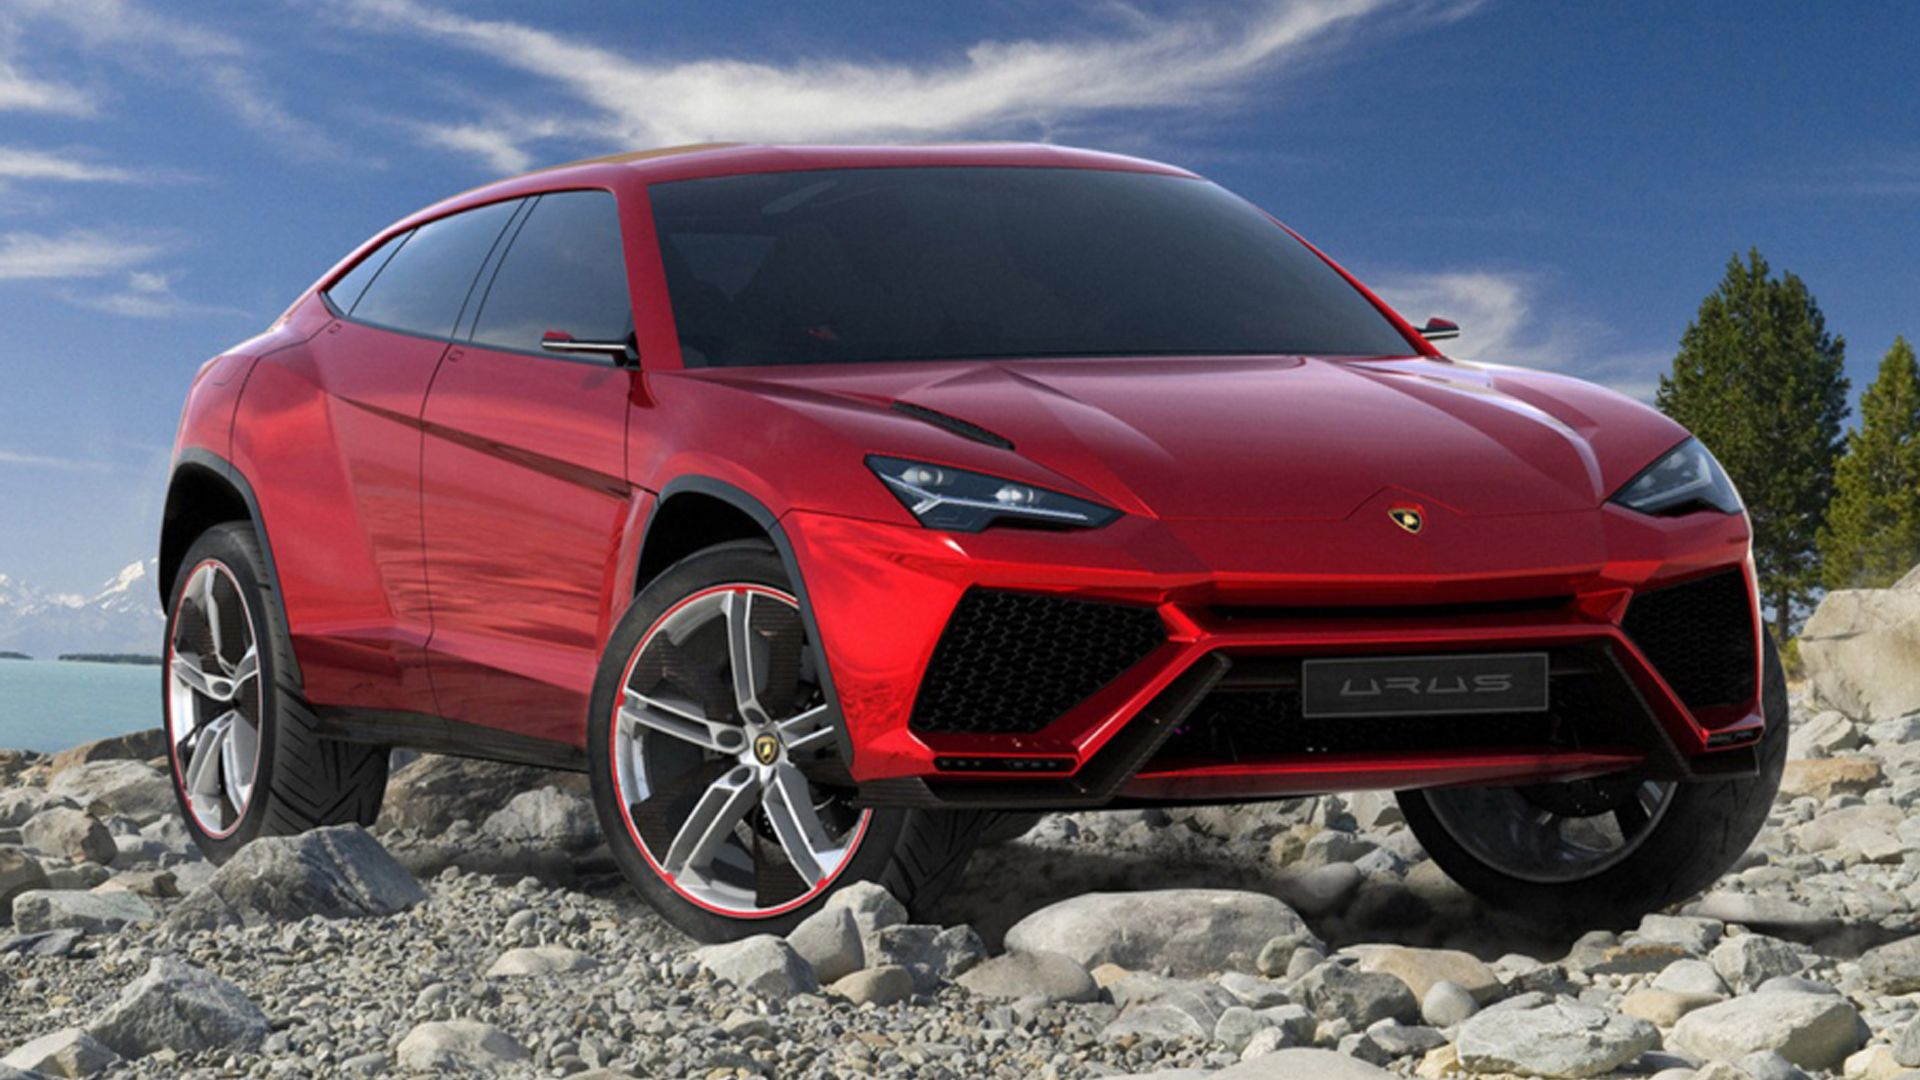 Lamborghini Urus Wallpaper Hd Cars Wallpaper Lamborghini Lambo